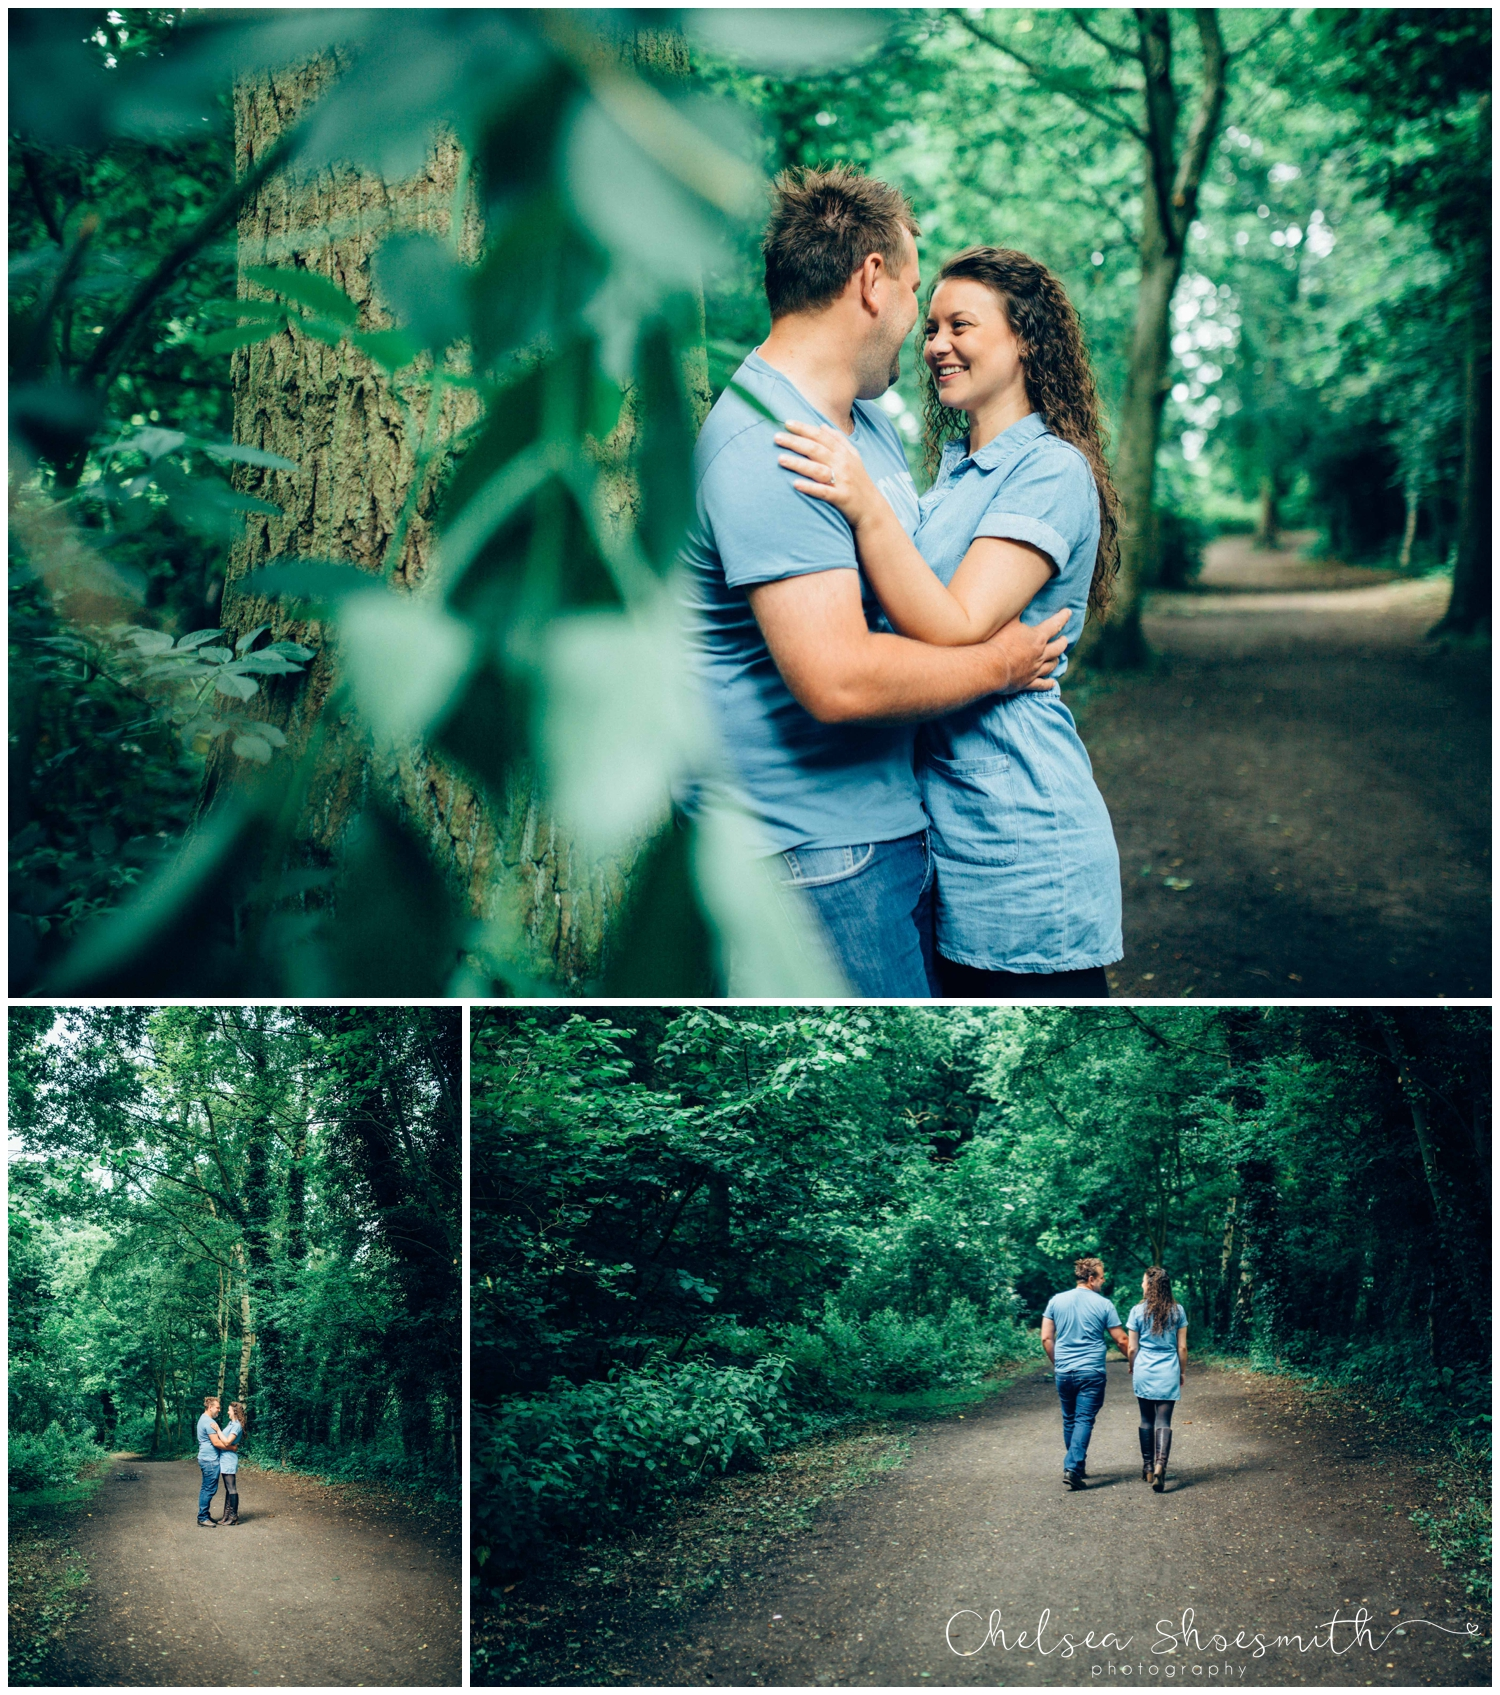 (6 of 75) Bethan & Peter Engagement Shoot Cheshire, Delamere Forest Chelsea Shoesmith Photography